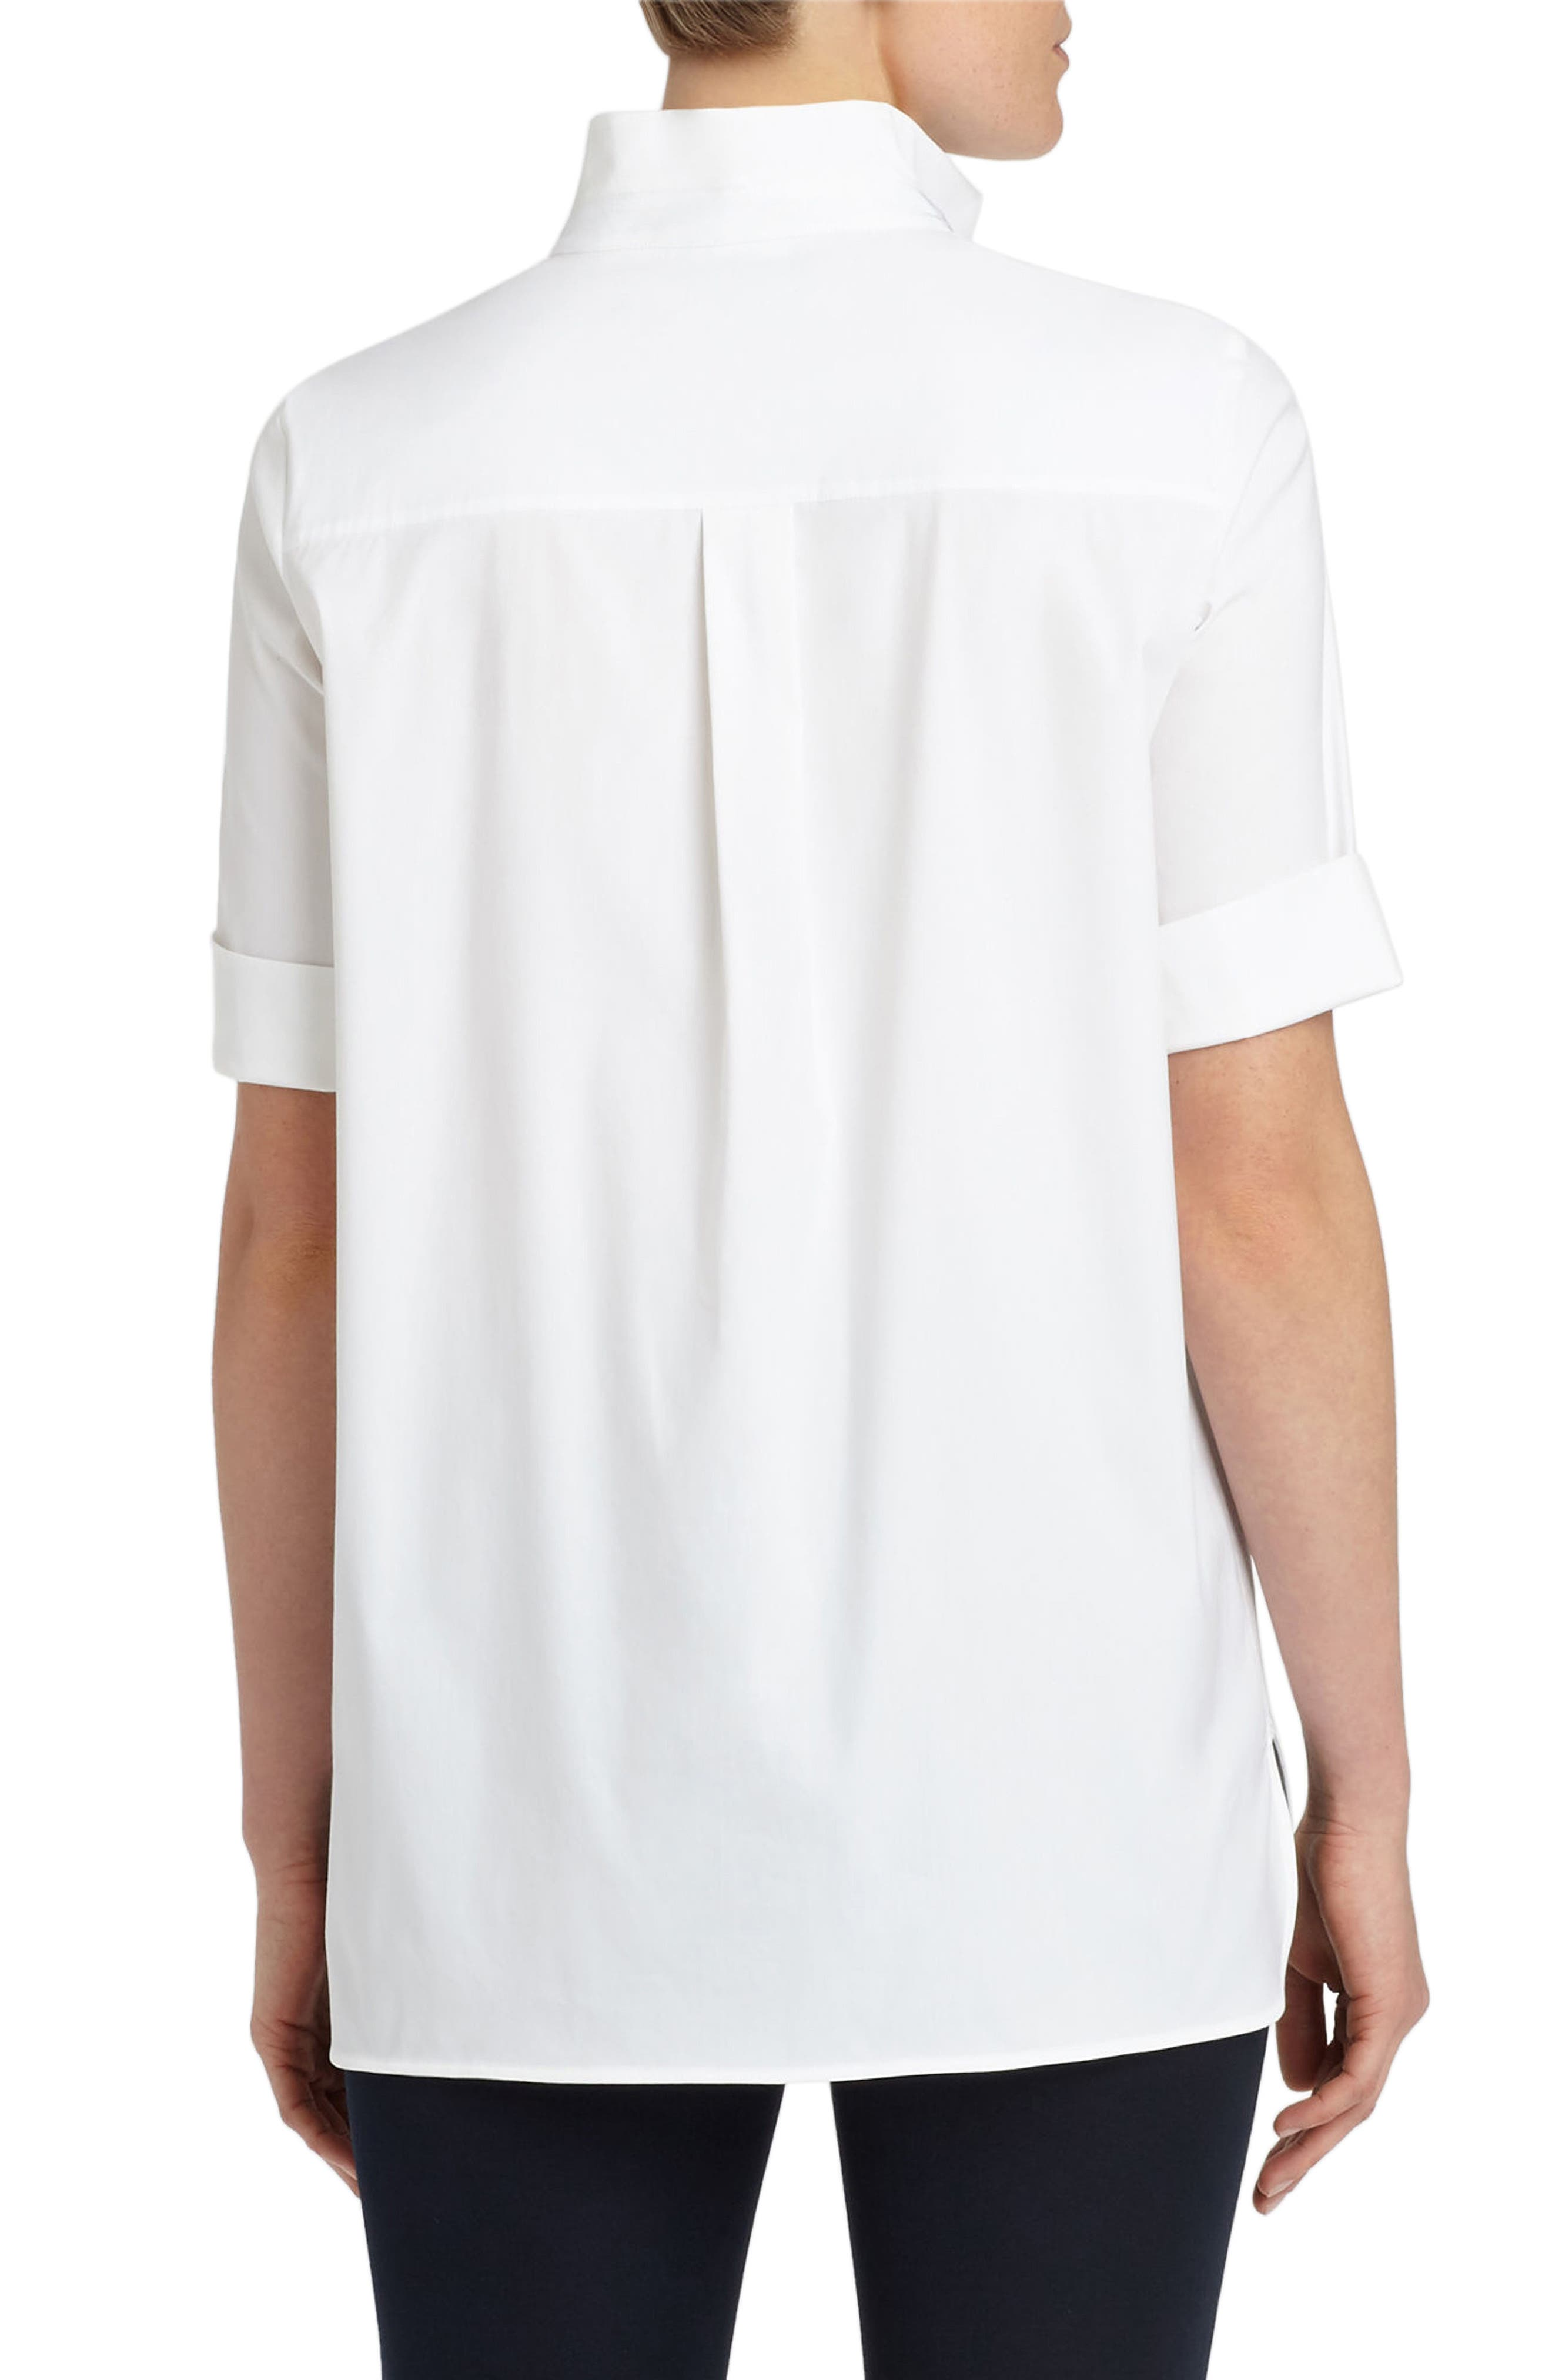 Daley High/Low Blouse,                             Alternate thumbnail 2, color,                             100